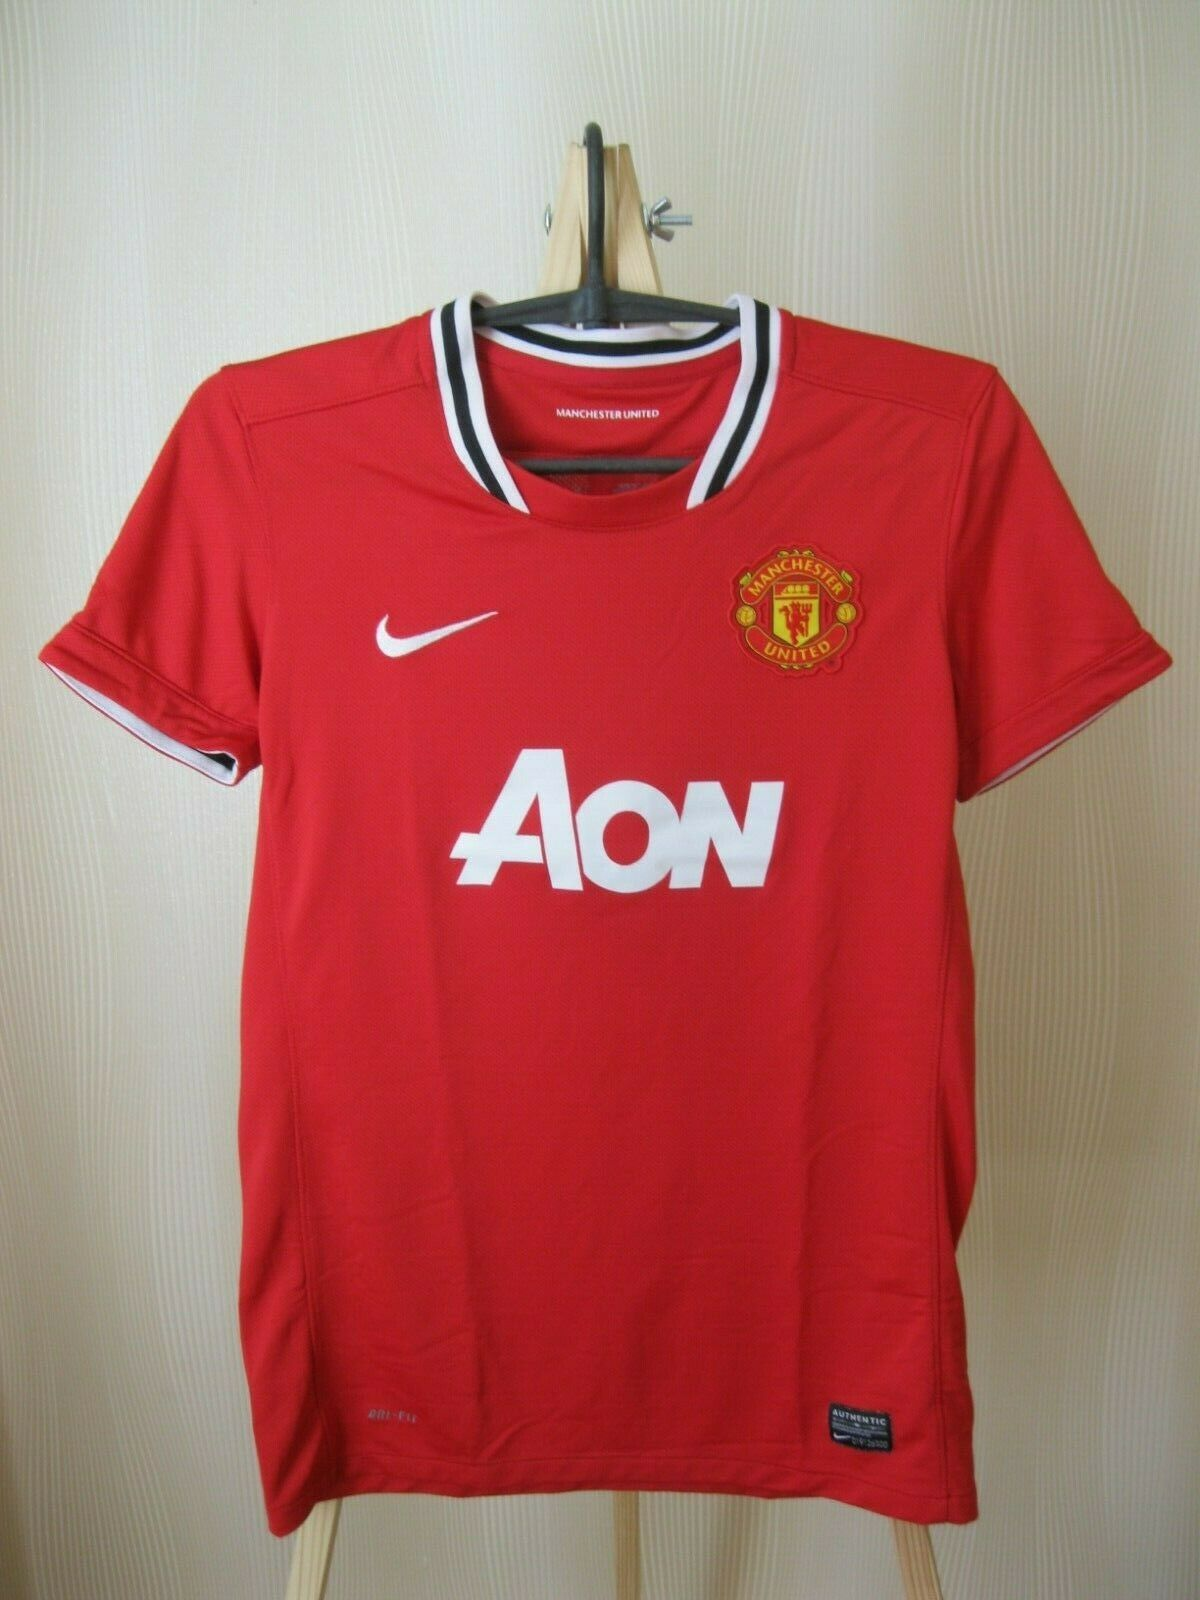 Manchester United #14 Chicharito 2011/2012 Home Size S jersey Nike 423956-623